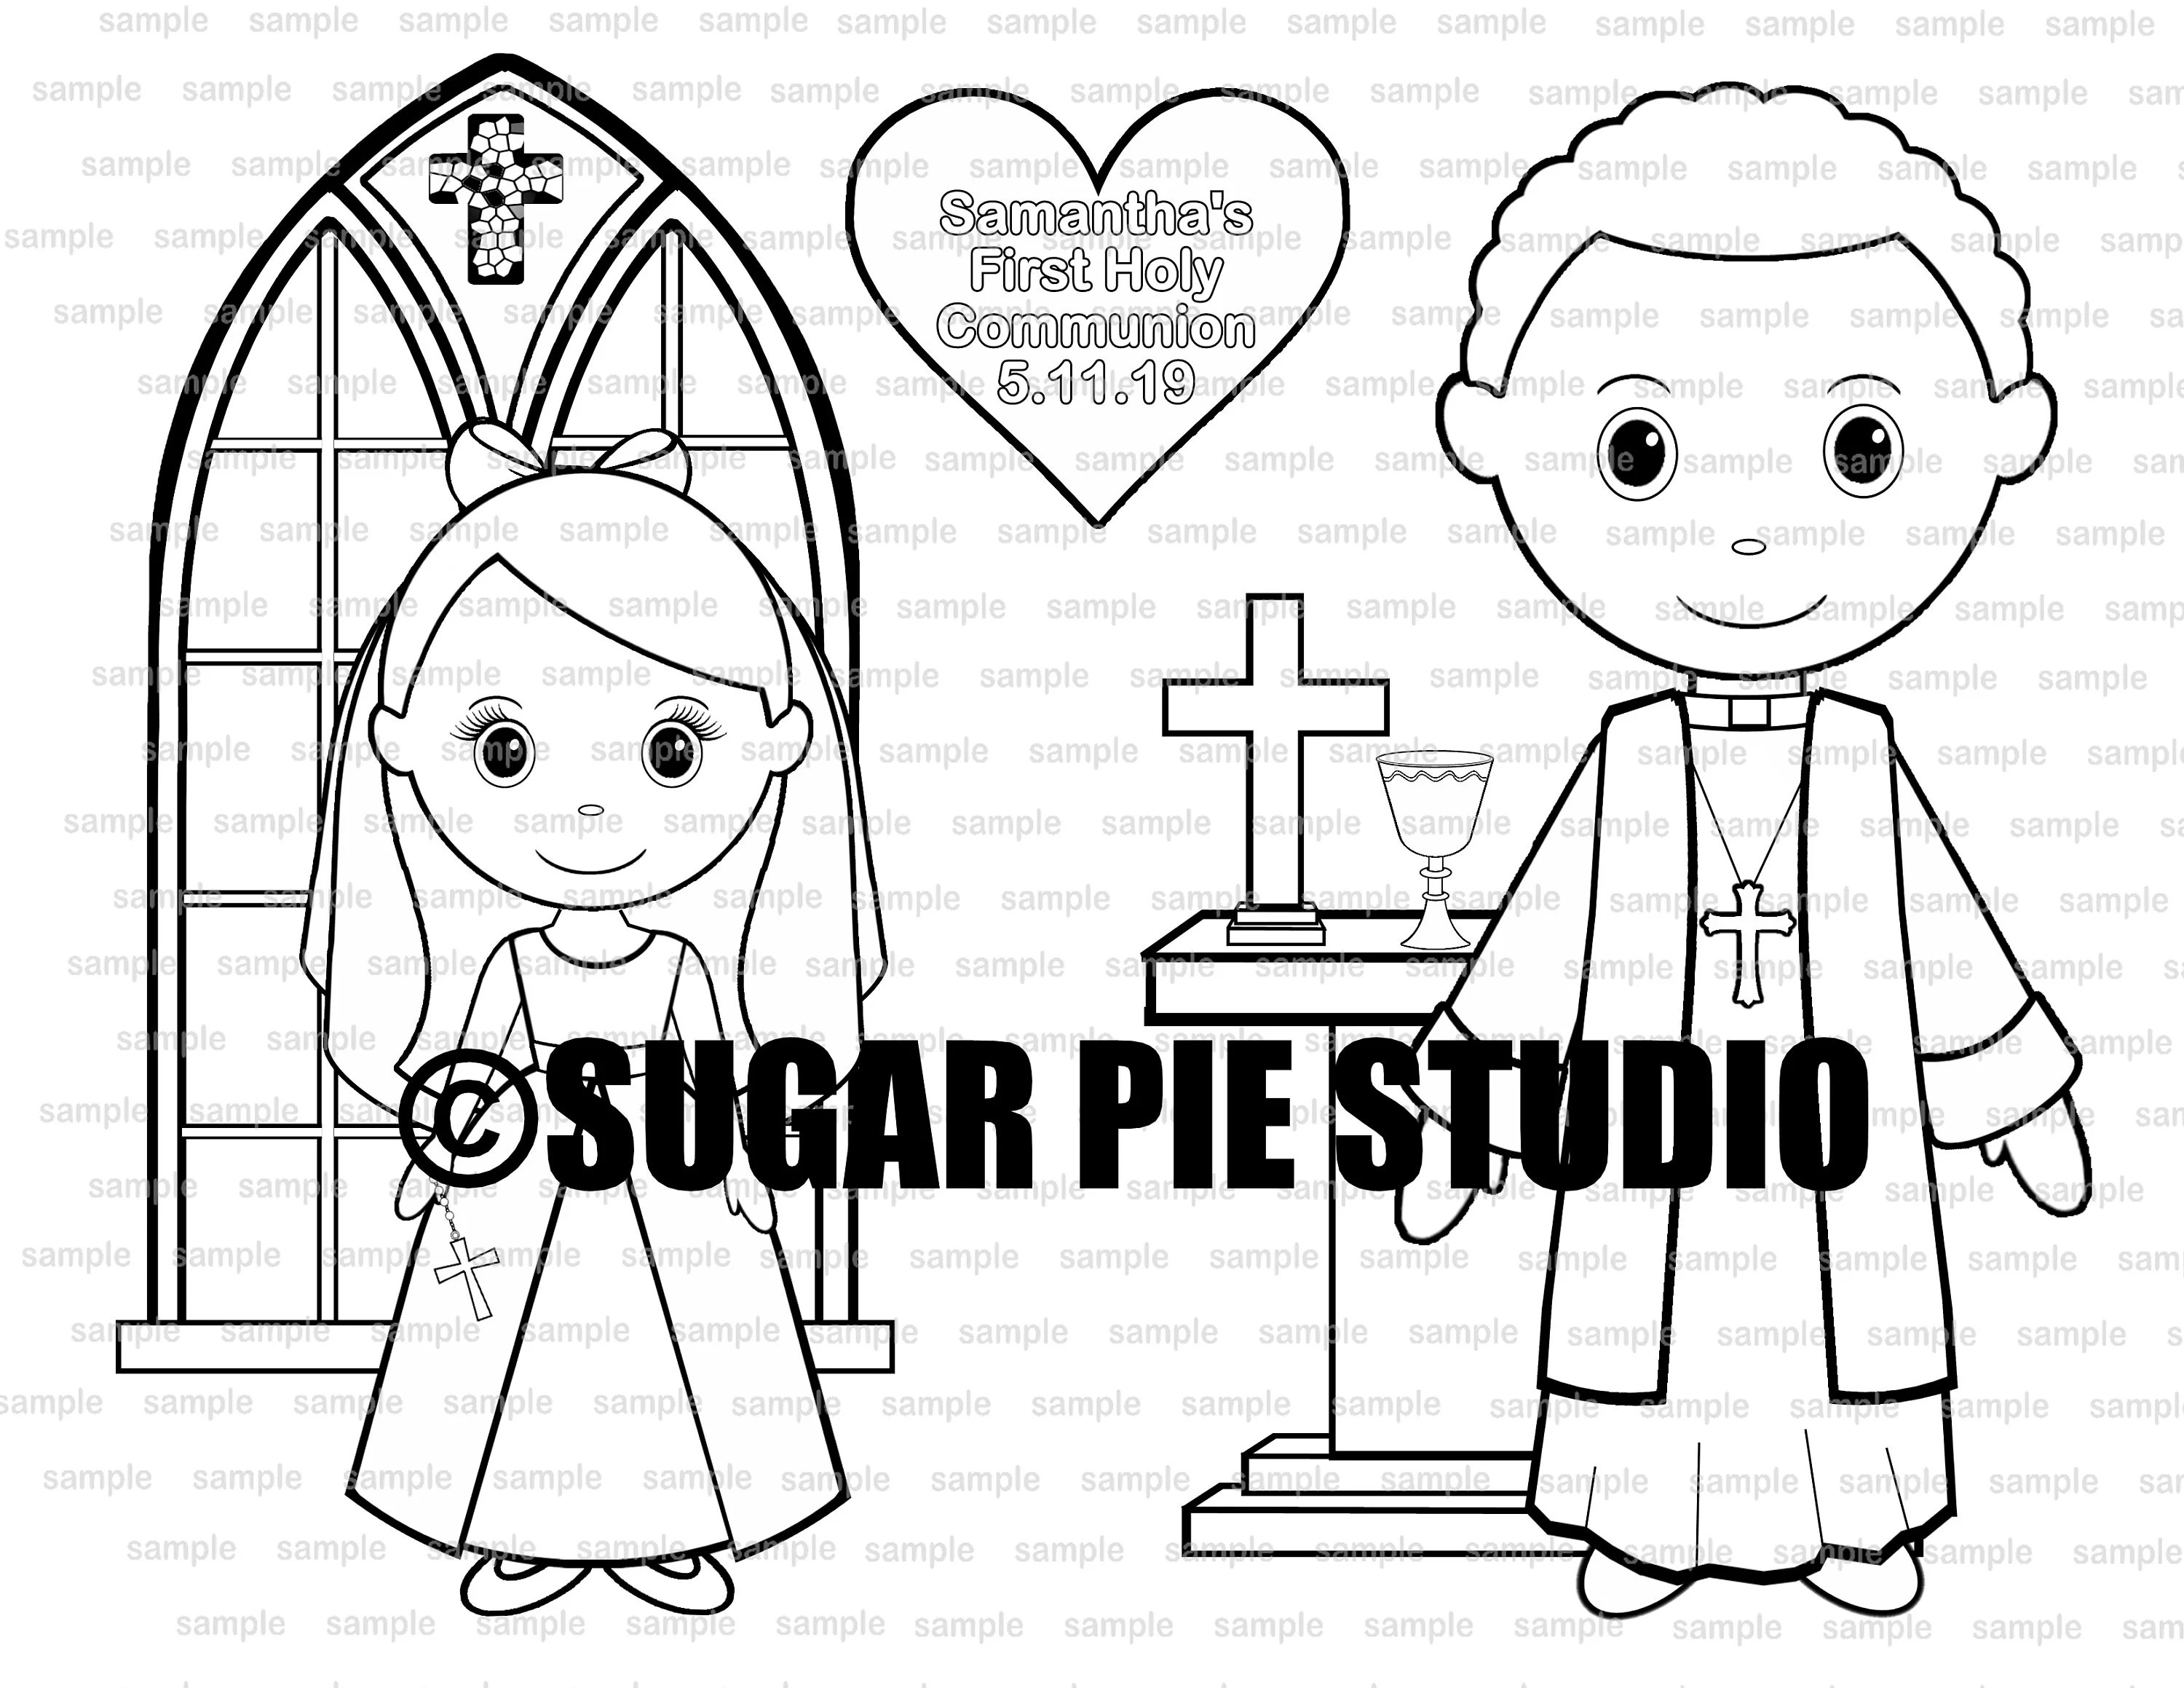 Communion coloring activity page PDF or JPEG TEMPLATE